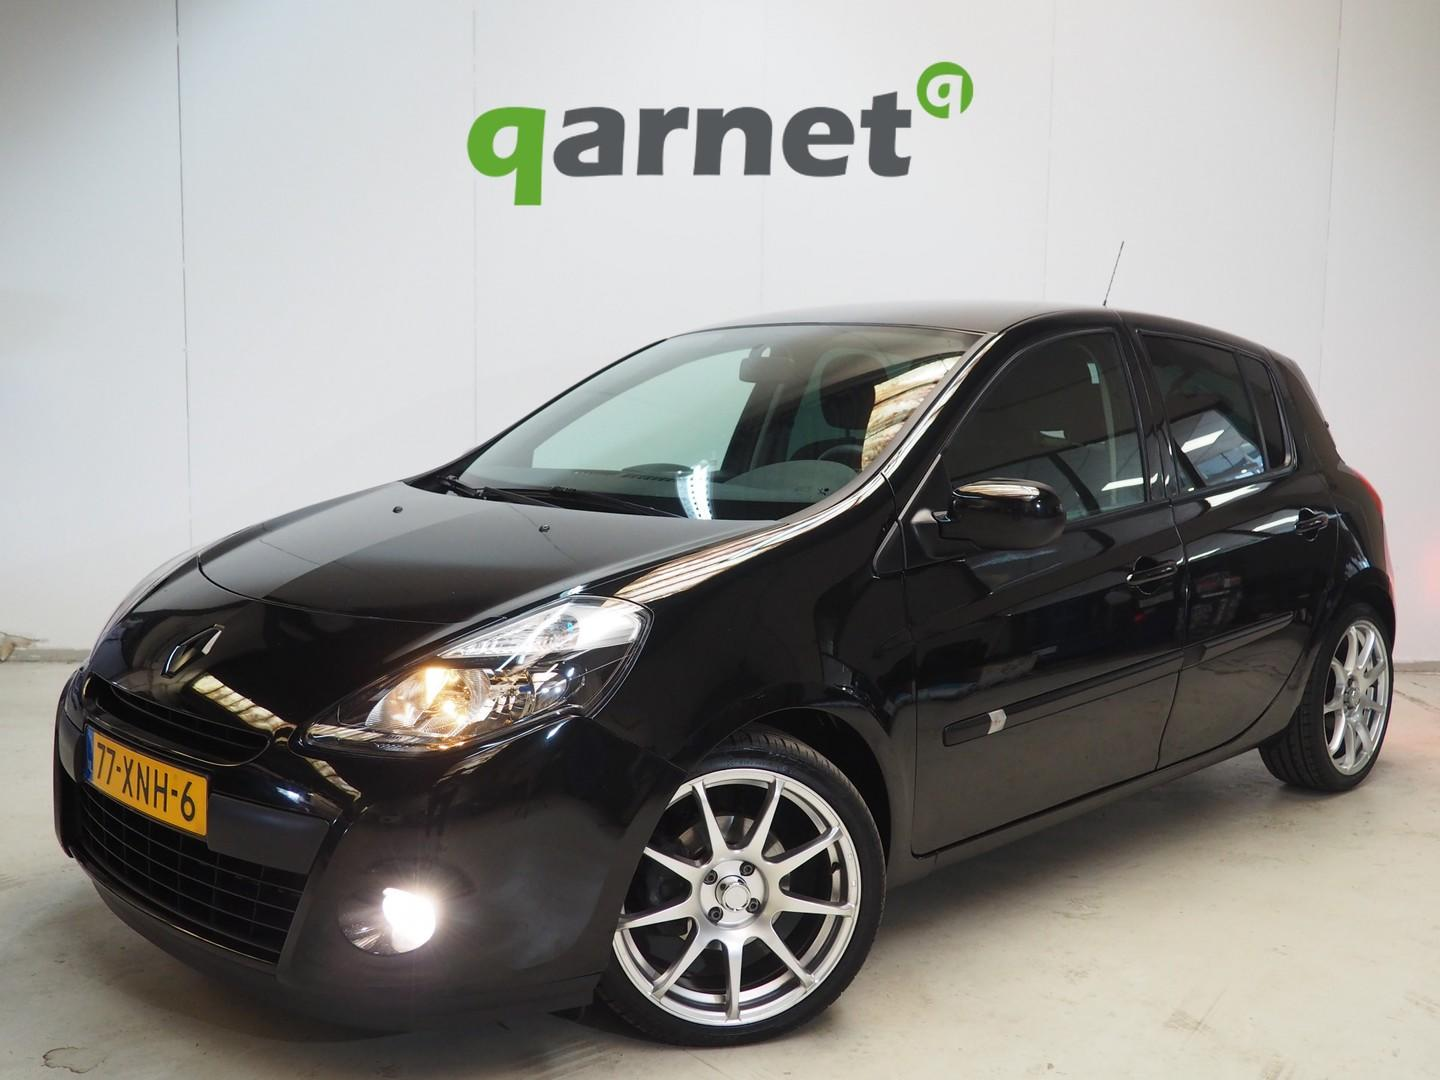 Renault Clio 1.5 dci collection, db-riem vervangen ,cruise control, 17inch, 5drs, airco, apk 12-2019 ,